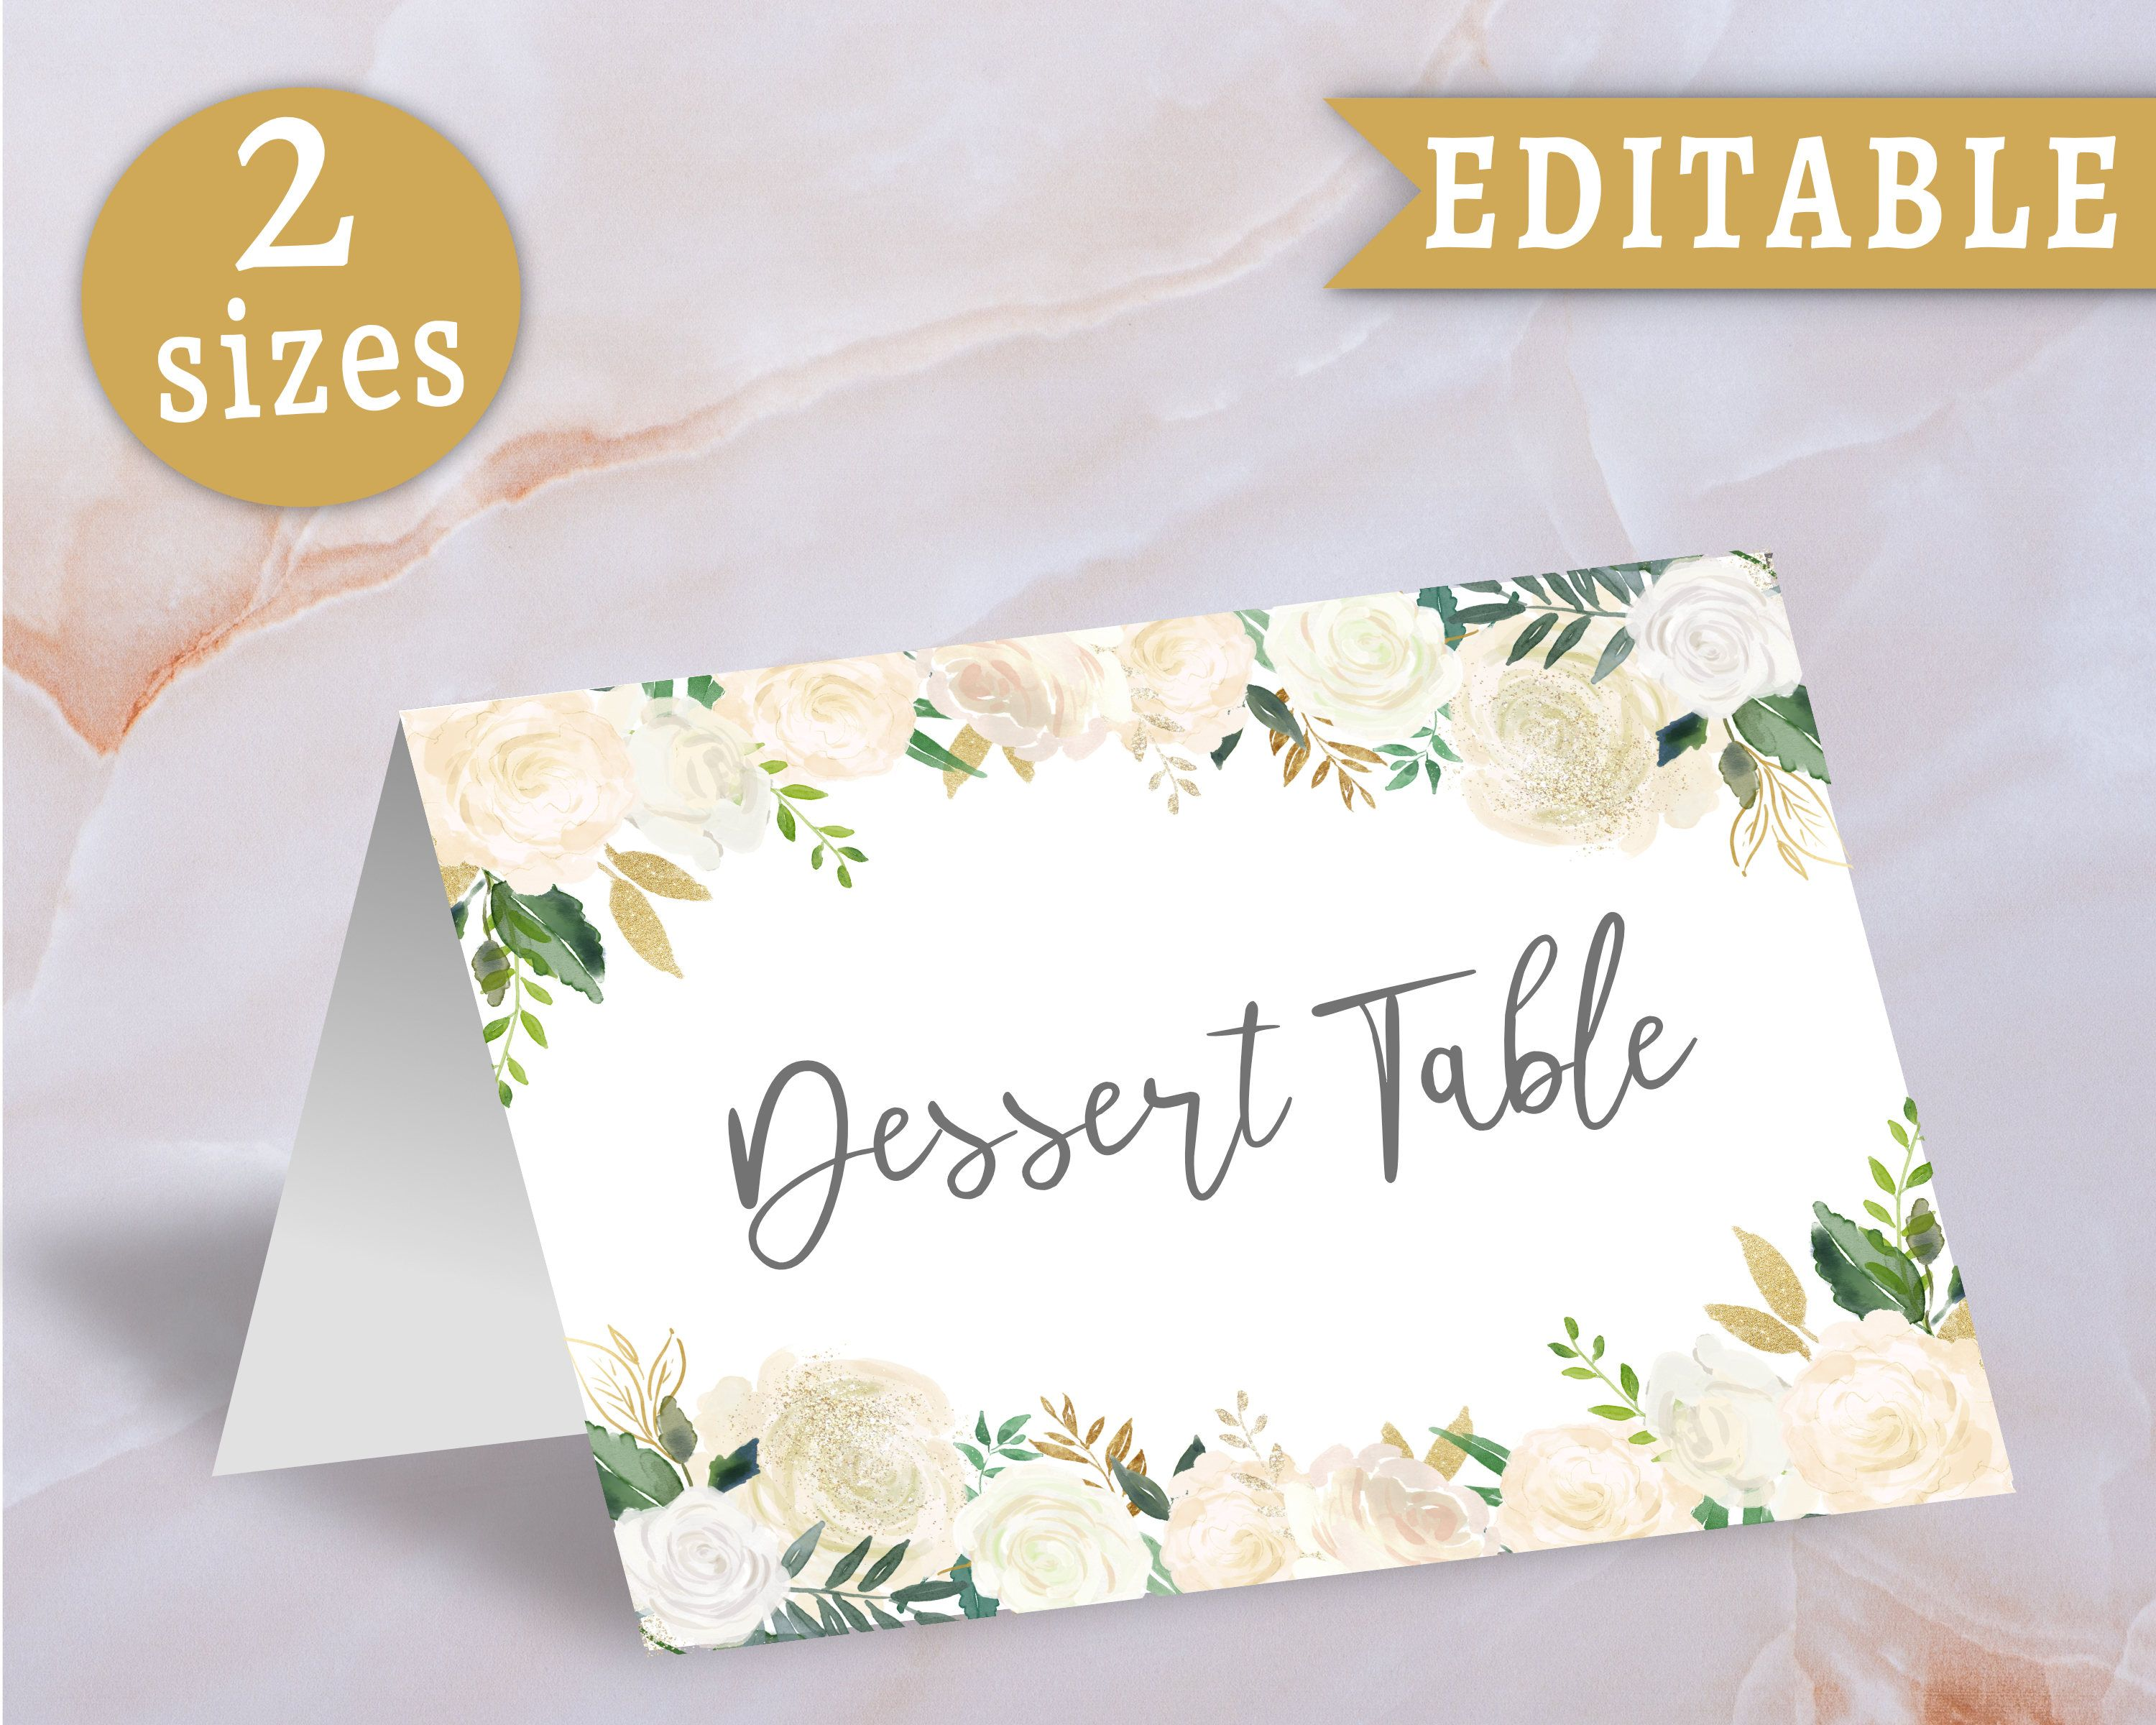 Food Tent Card Label Floral White Gold Editable Template Etsy Food Tent Tent Cards Tent